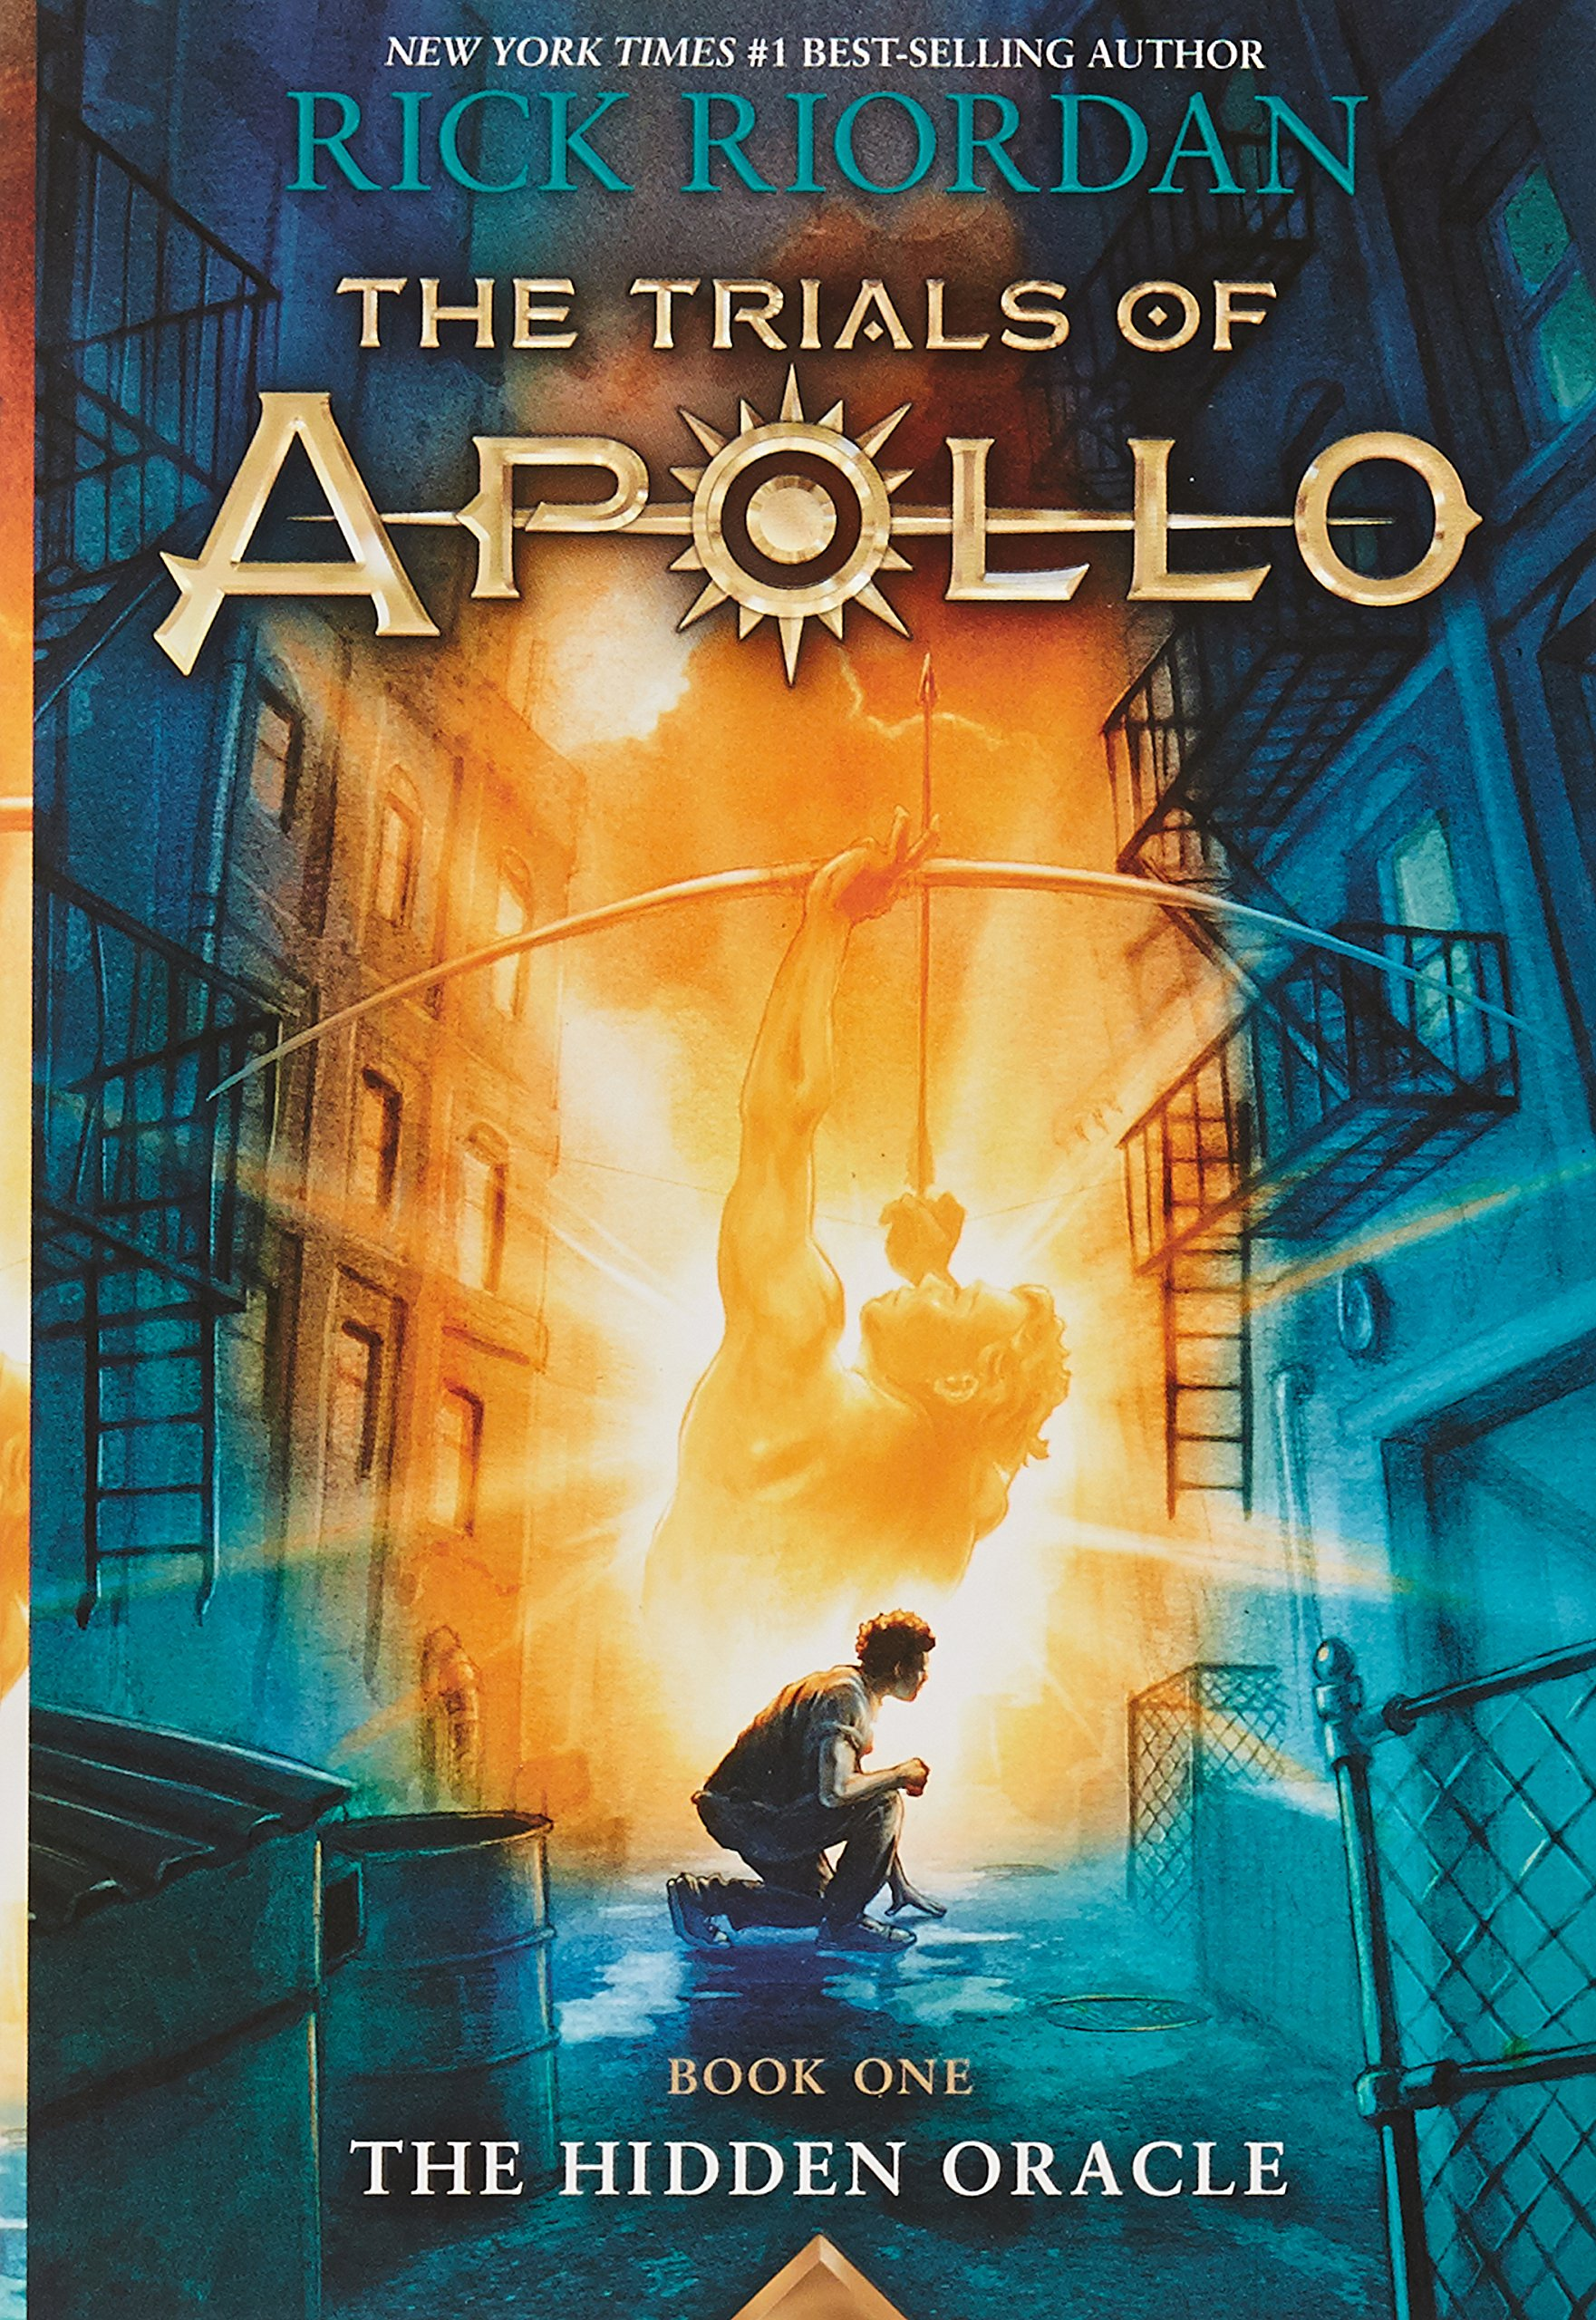 The Trials of Apollo Book 1 The Hidden Oracle Rick Riordan